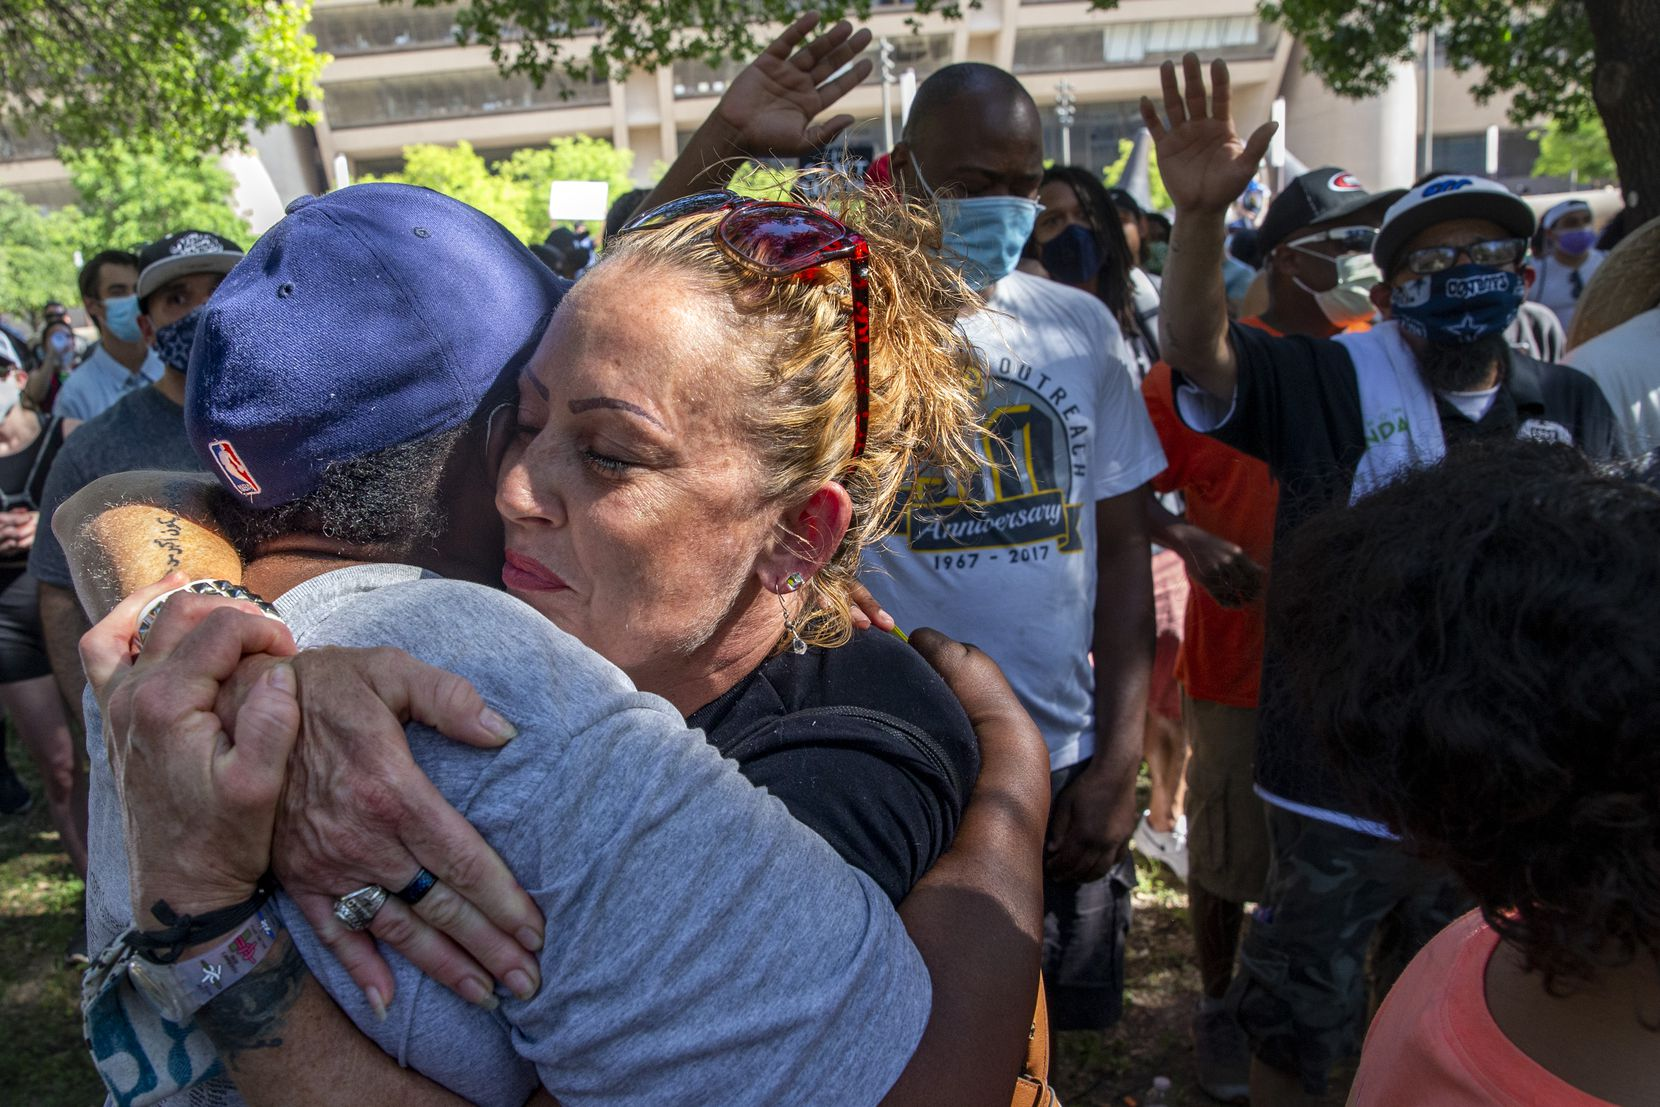 From left, Sharon Offord and Danielle Romero embrace during worship at the Community of Faith Gathering at Dallas City Hall to denounce police brutality and systemic racism in Dallas on Thursday, June 4, 2020. The demonstration took place on the seventh consecutive day of organized protests in response to the recent deaths of George Floyd in Minneapolis and Breonna Taylor in Louisville.